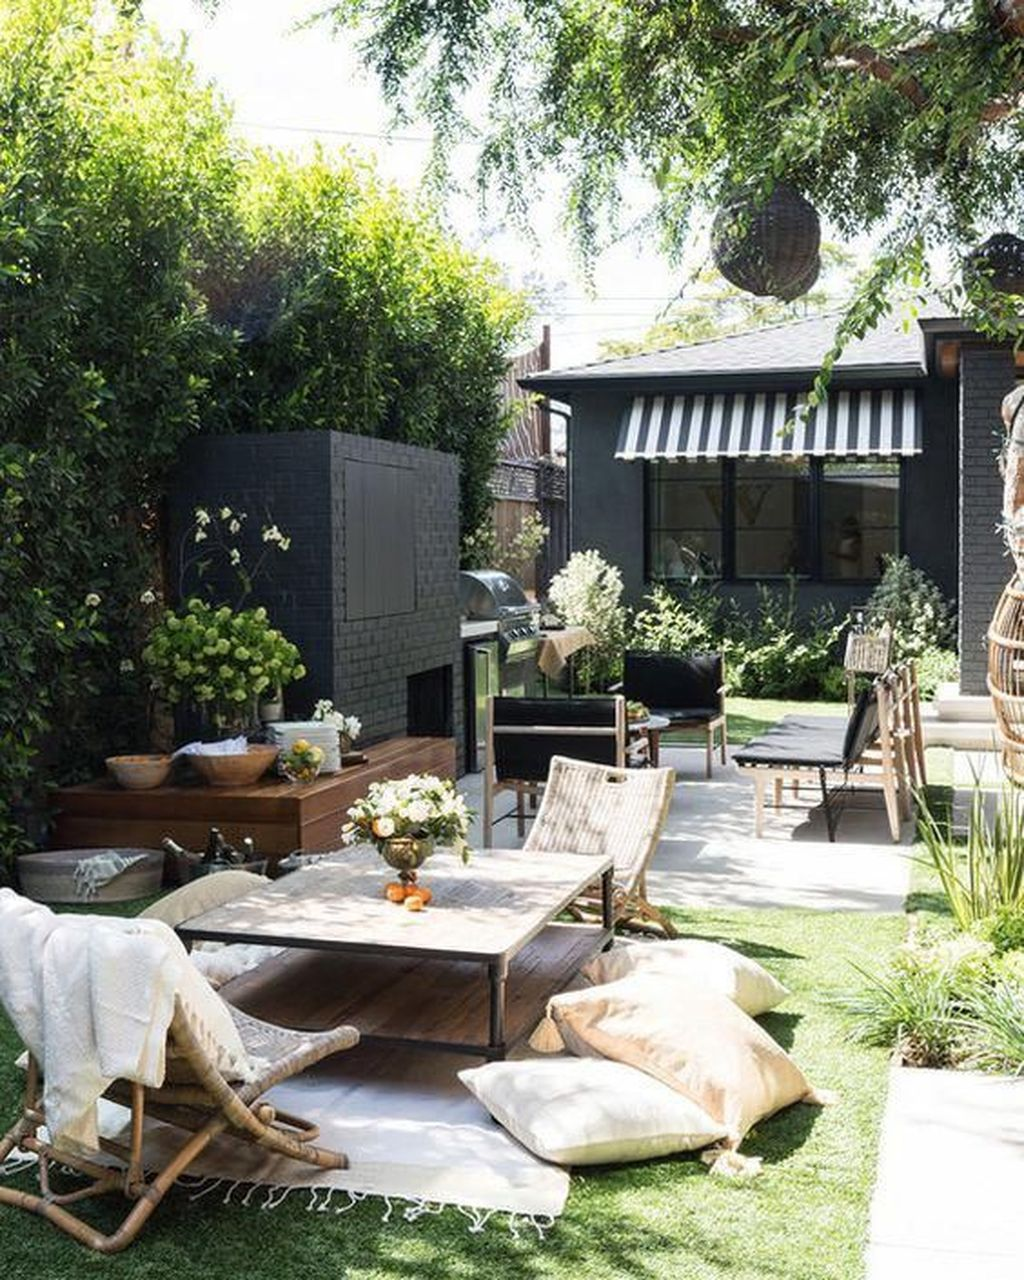 Admirable Cozy Patio Design Ideas To Relaxing On A Sunny Day 21